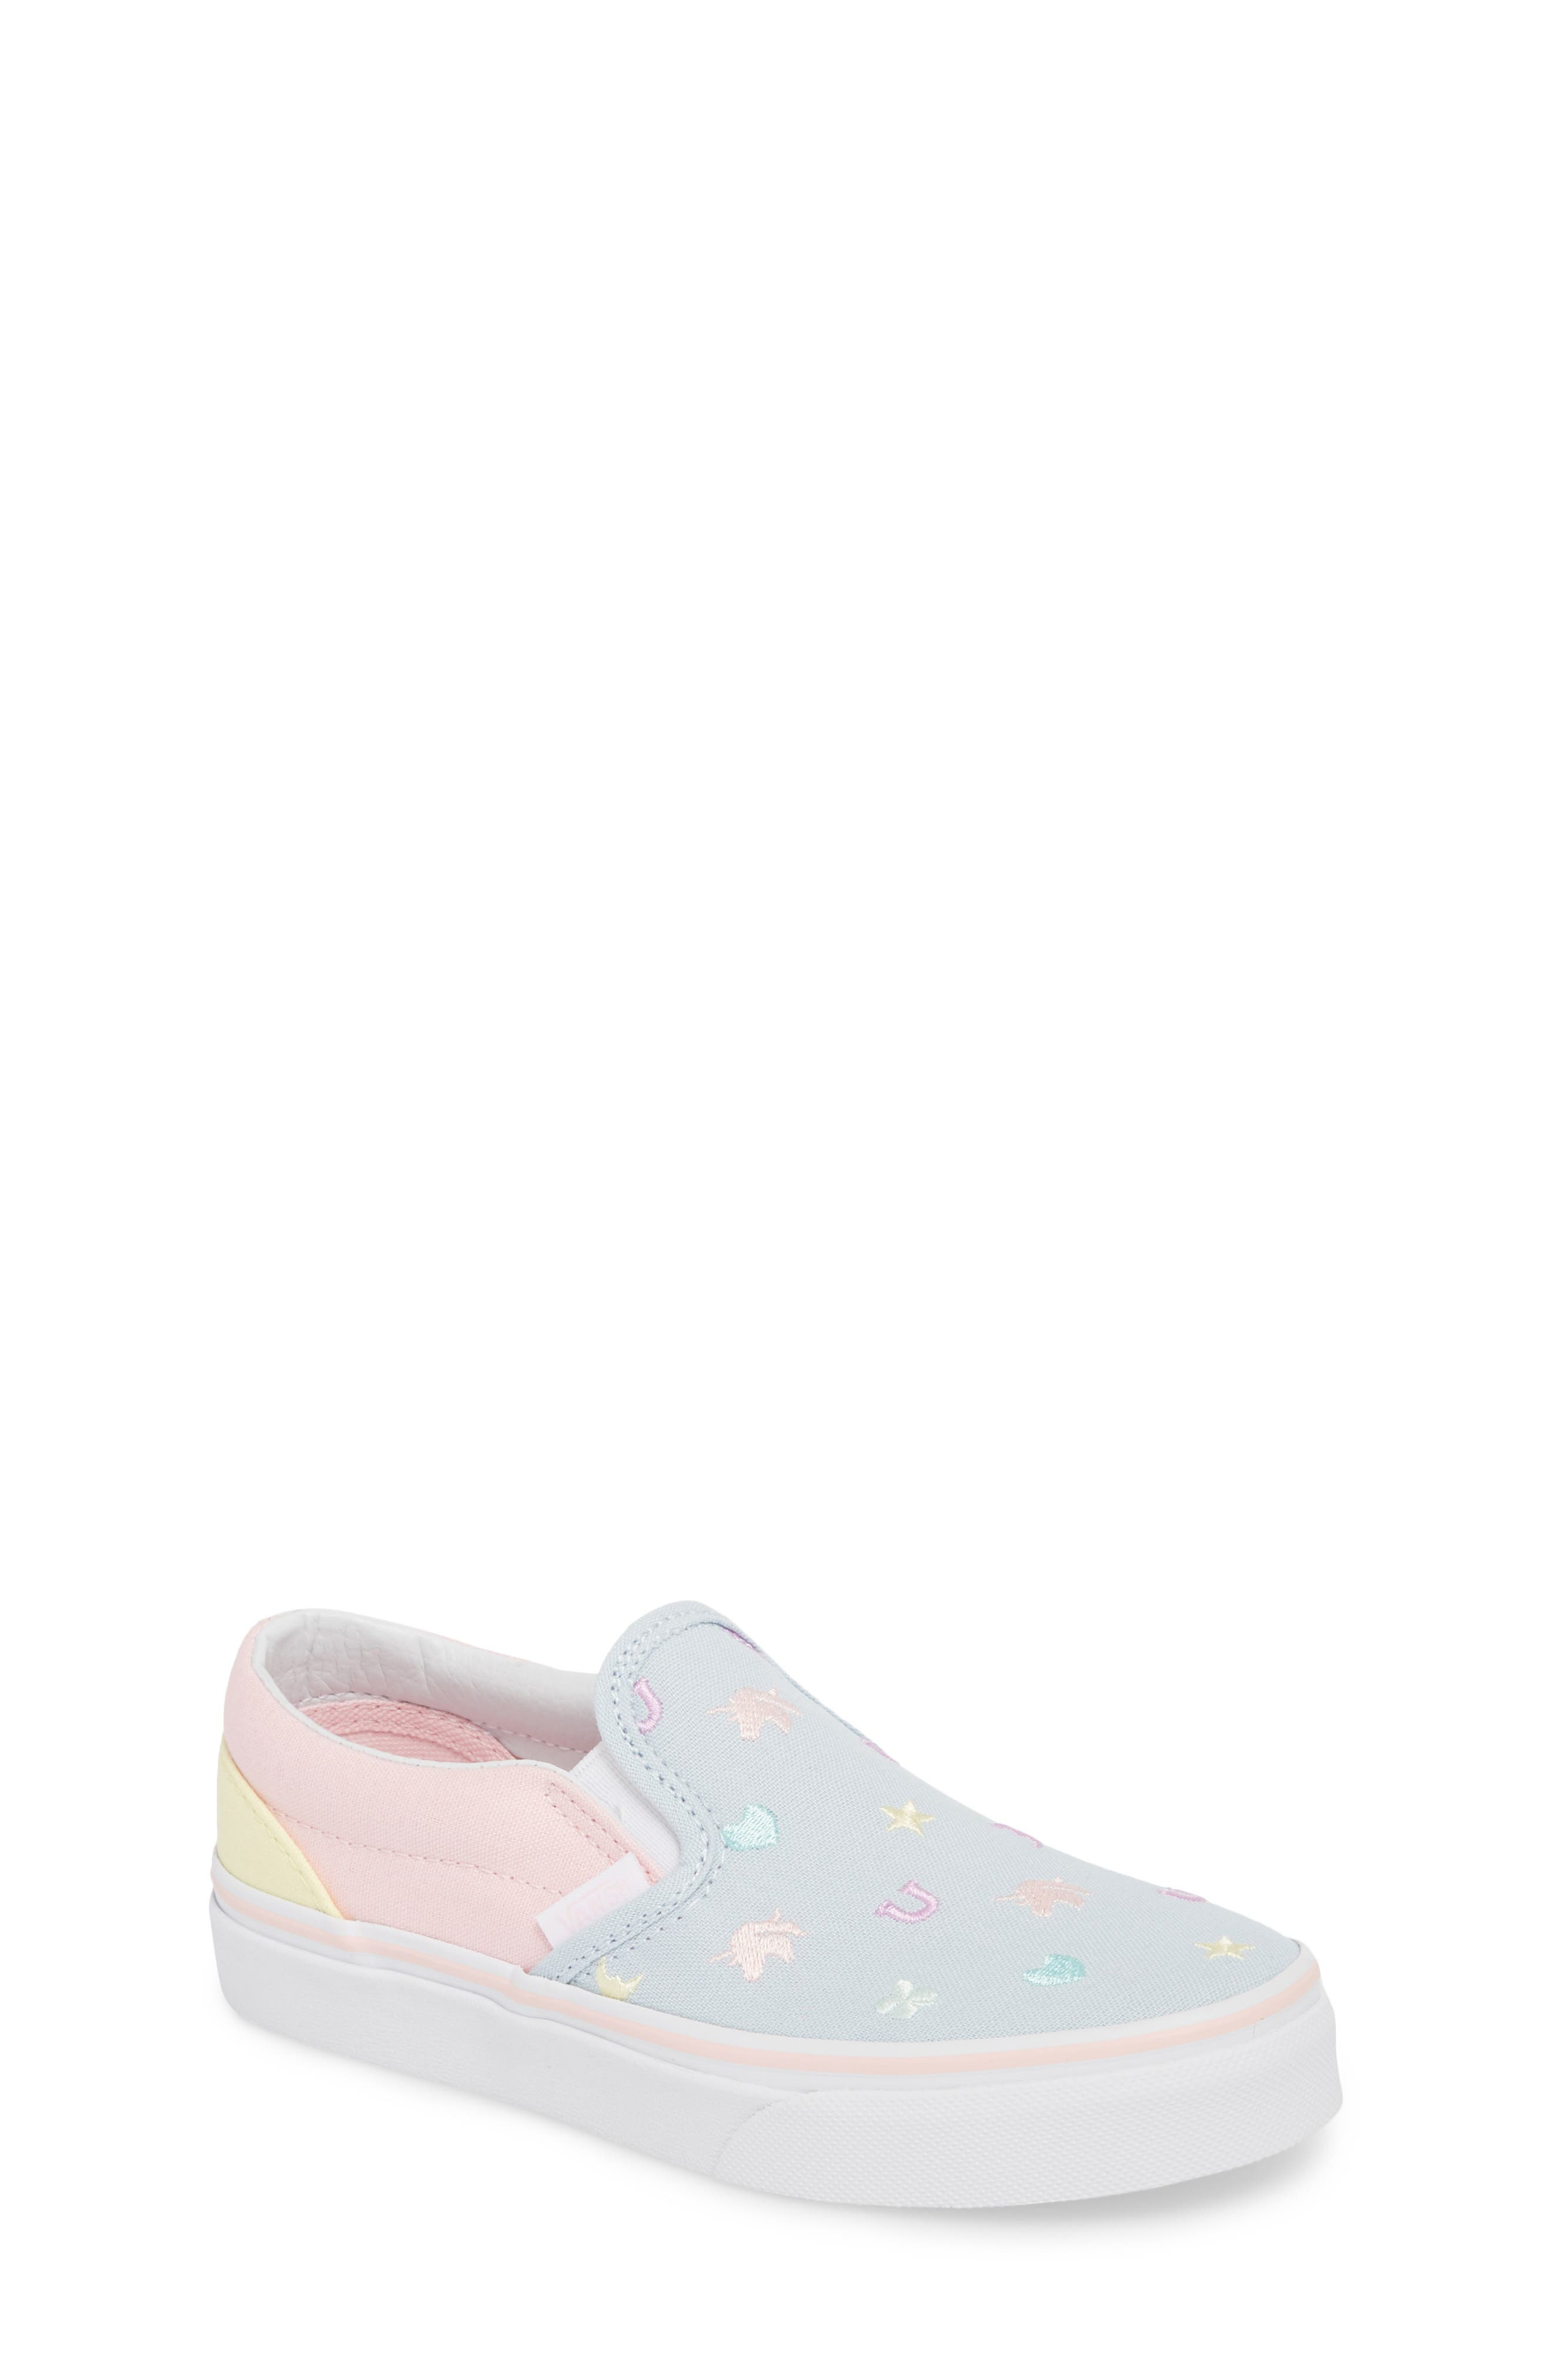 Classic Slip-On,                             Main thumbnail 1, color,                             EMBROIDERED MULTI CHARMS